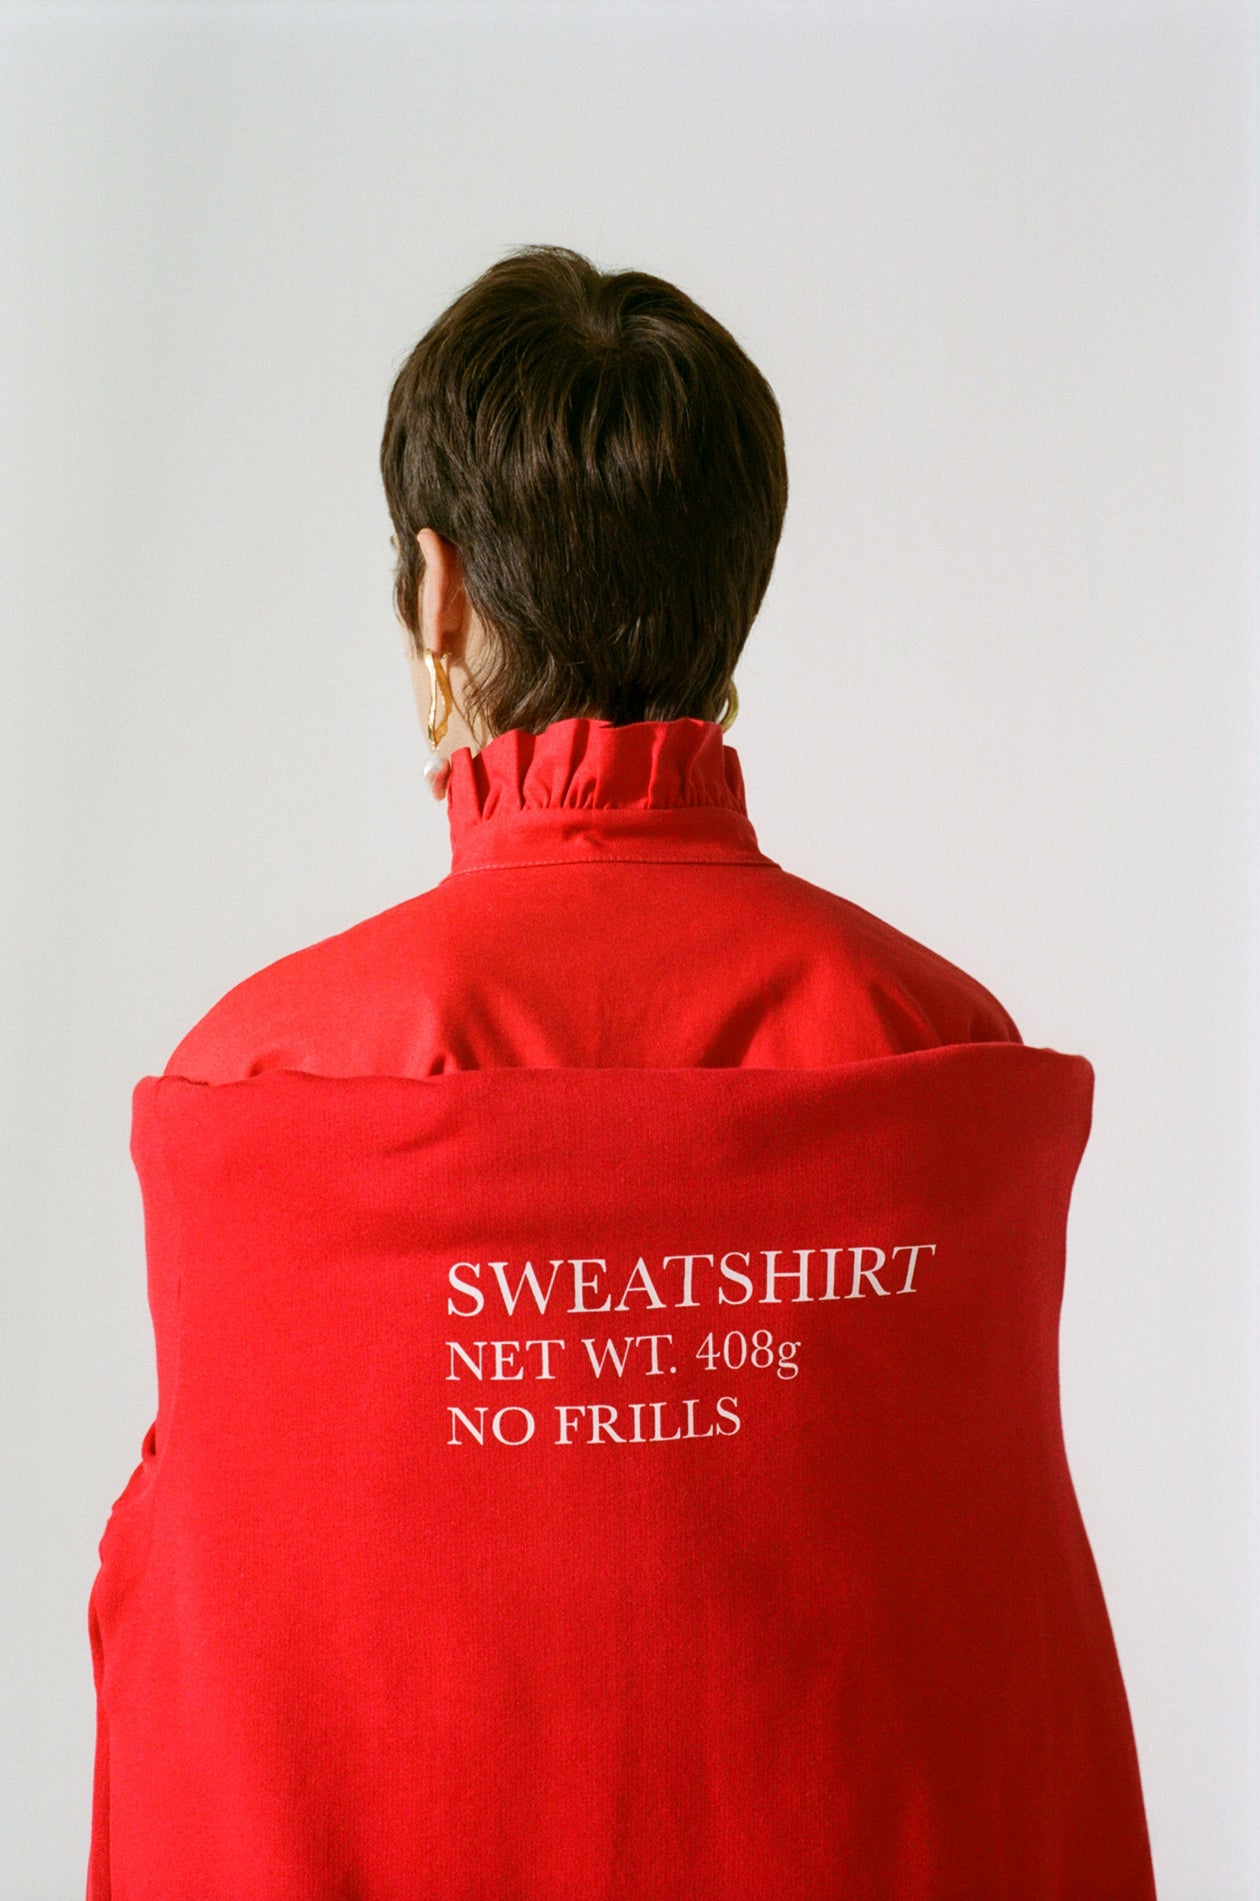 Introducing No Frills - Sustainable Luxury Fashion by Mother of Pearl